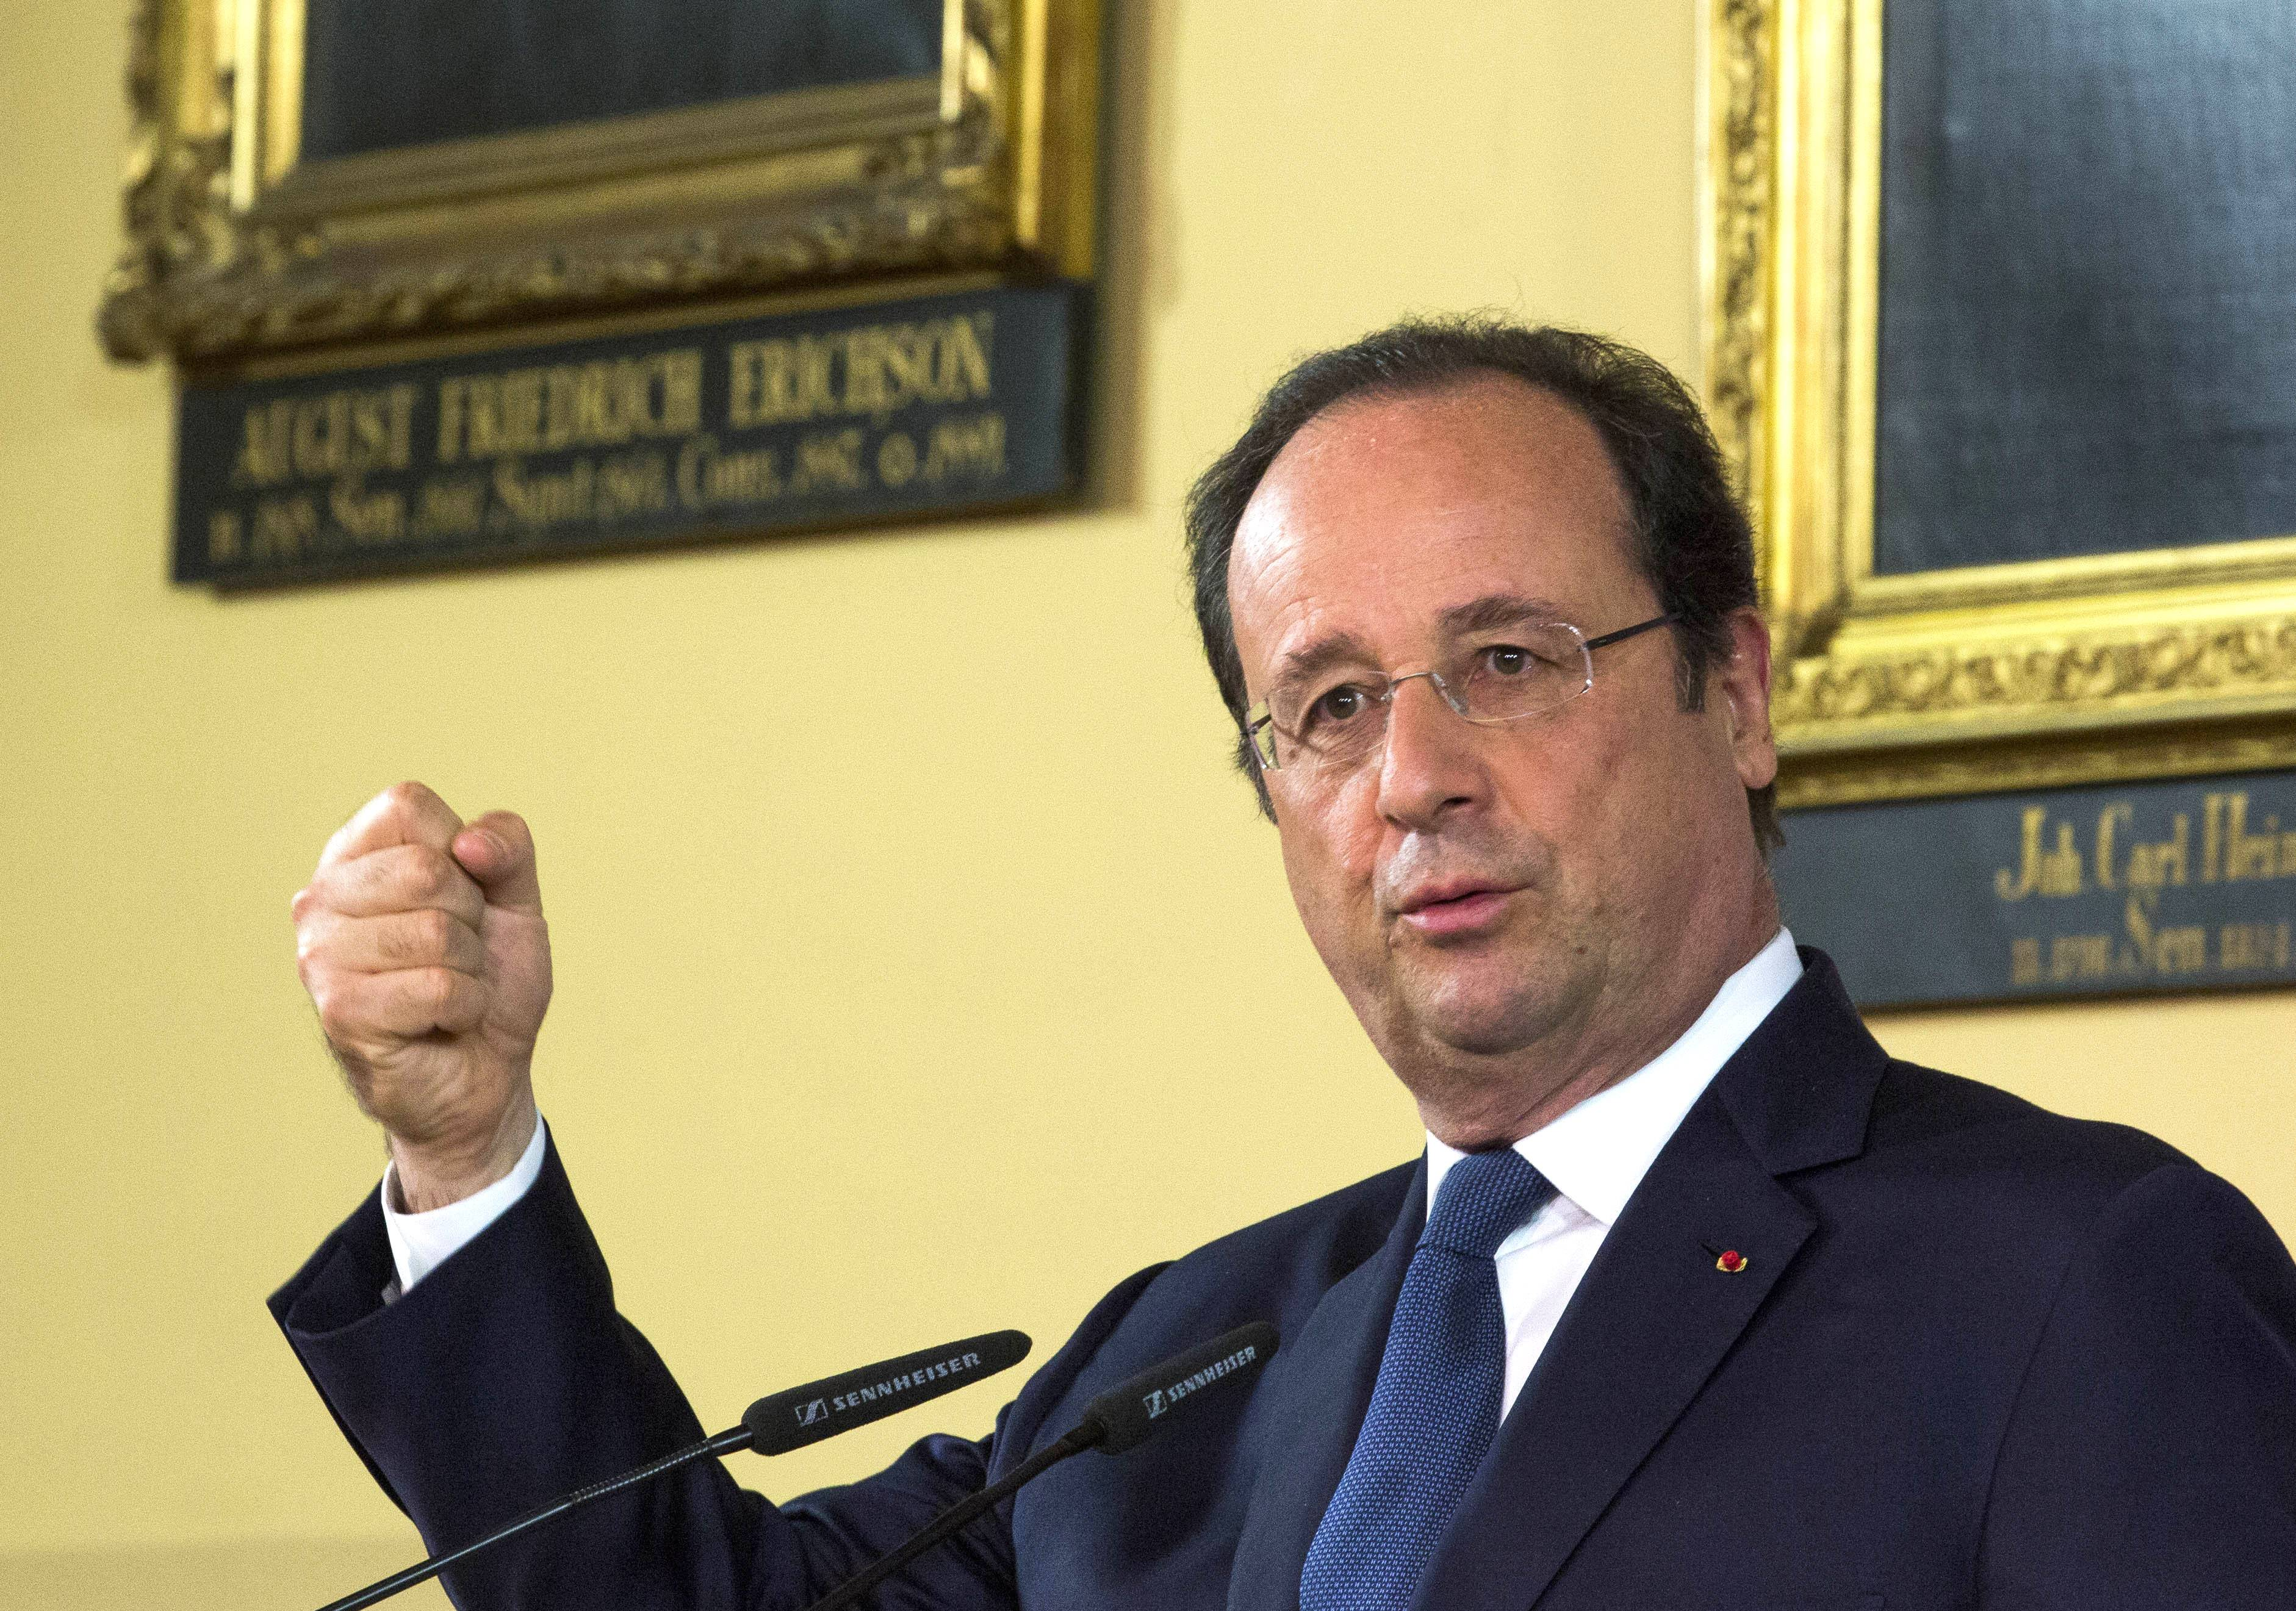 French President Francois Hollande gestures during a news conference with German Chancellor Merkel at the town hall in Stralsund, northern Germany, Saturday, May 10, during the second day of Hollande's two days visit to Merkel's scenic home constituency on the Baltic coast. One of the main talking points is expected to be over whether the European Union should impose further sanctions on Russia, for its involvement in the Ukraine crisis.